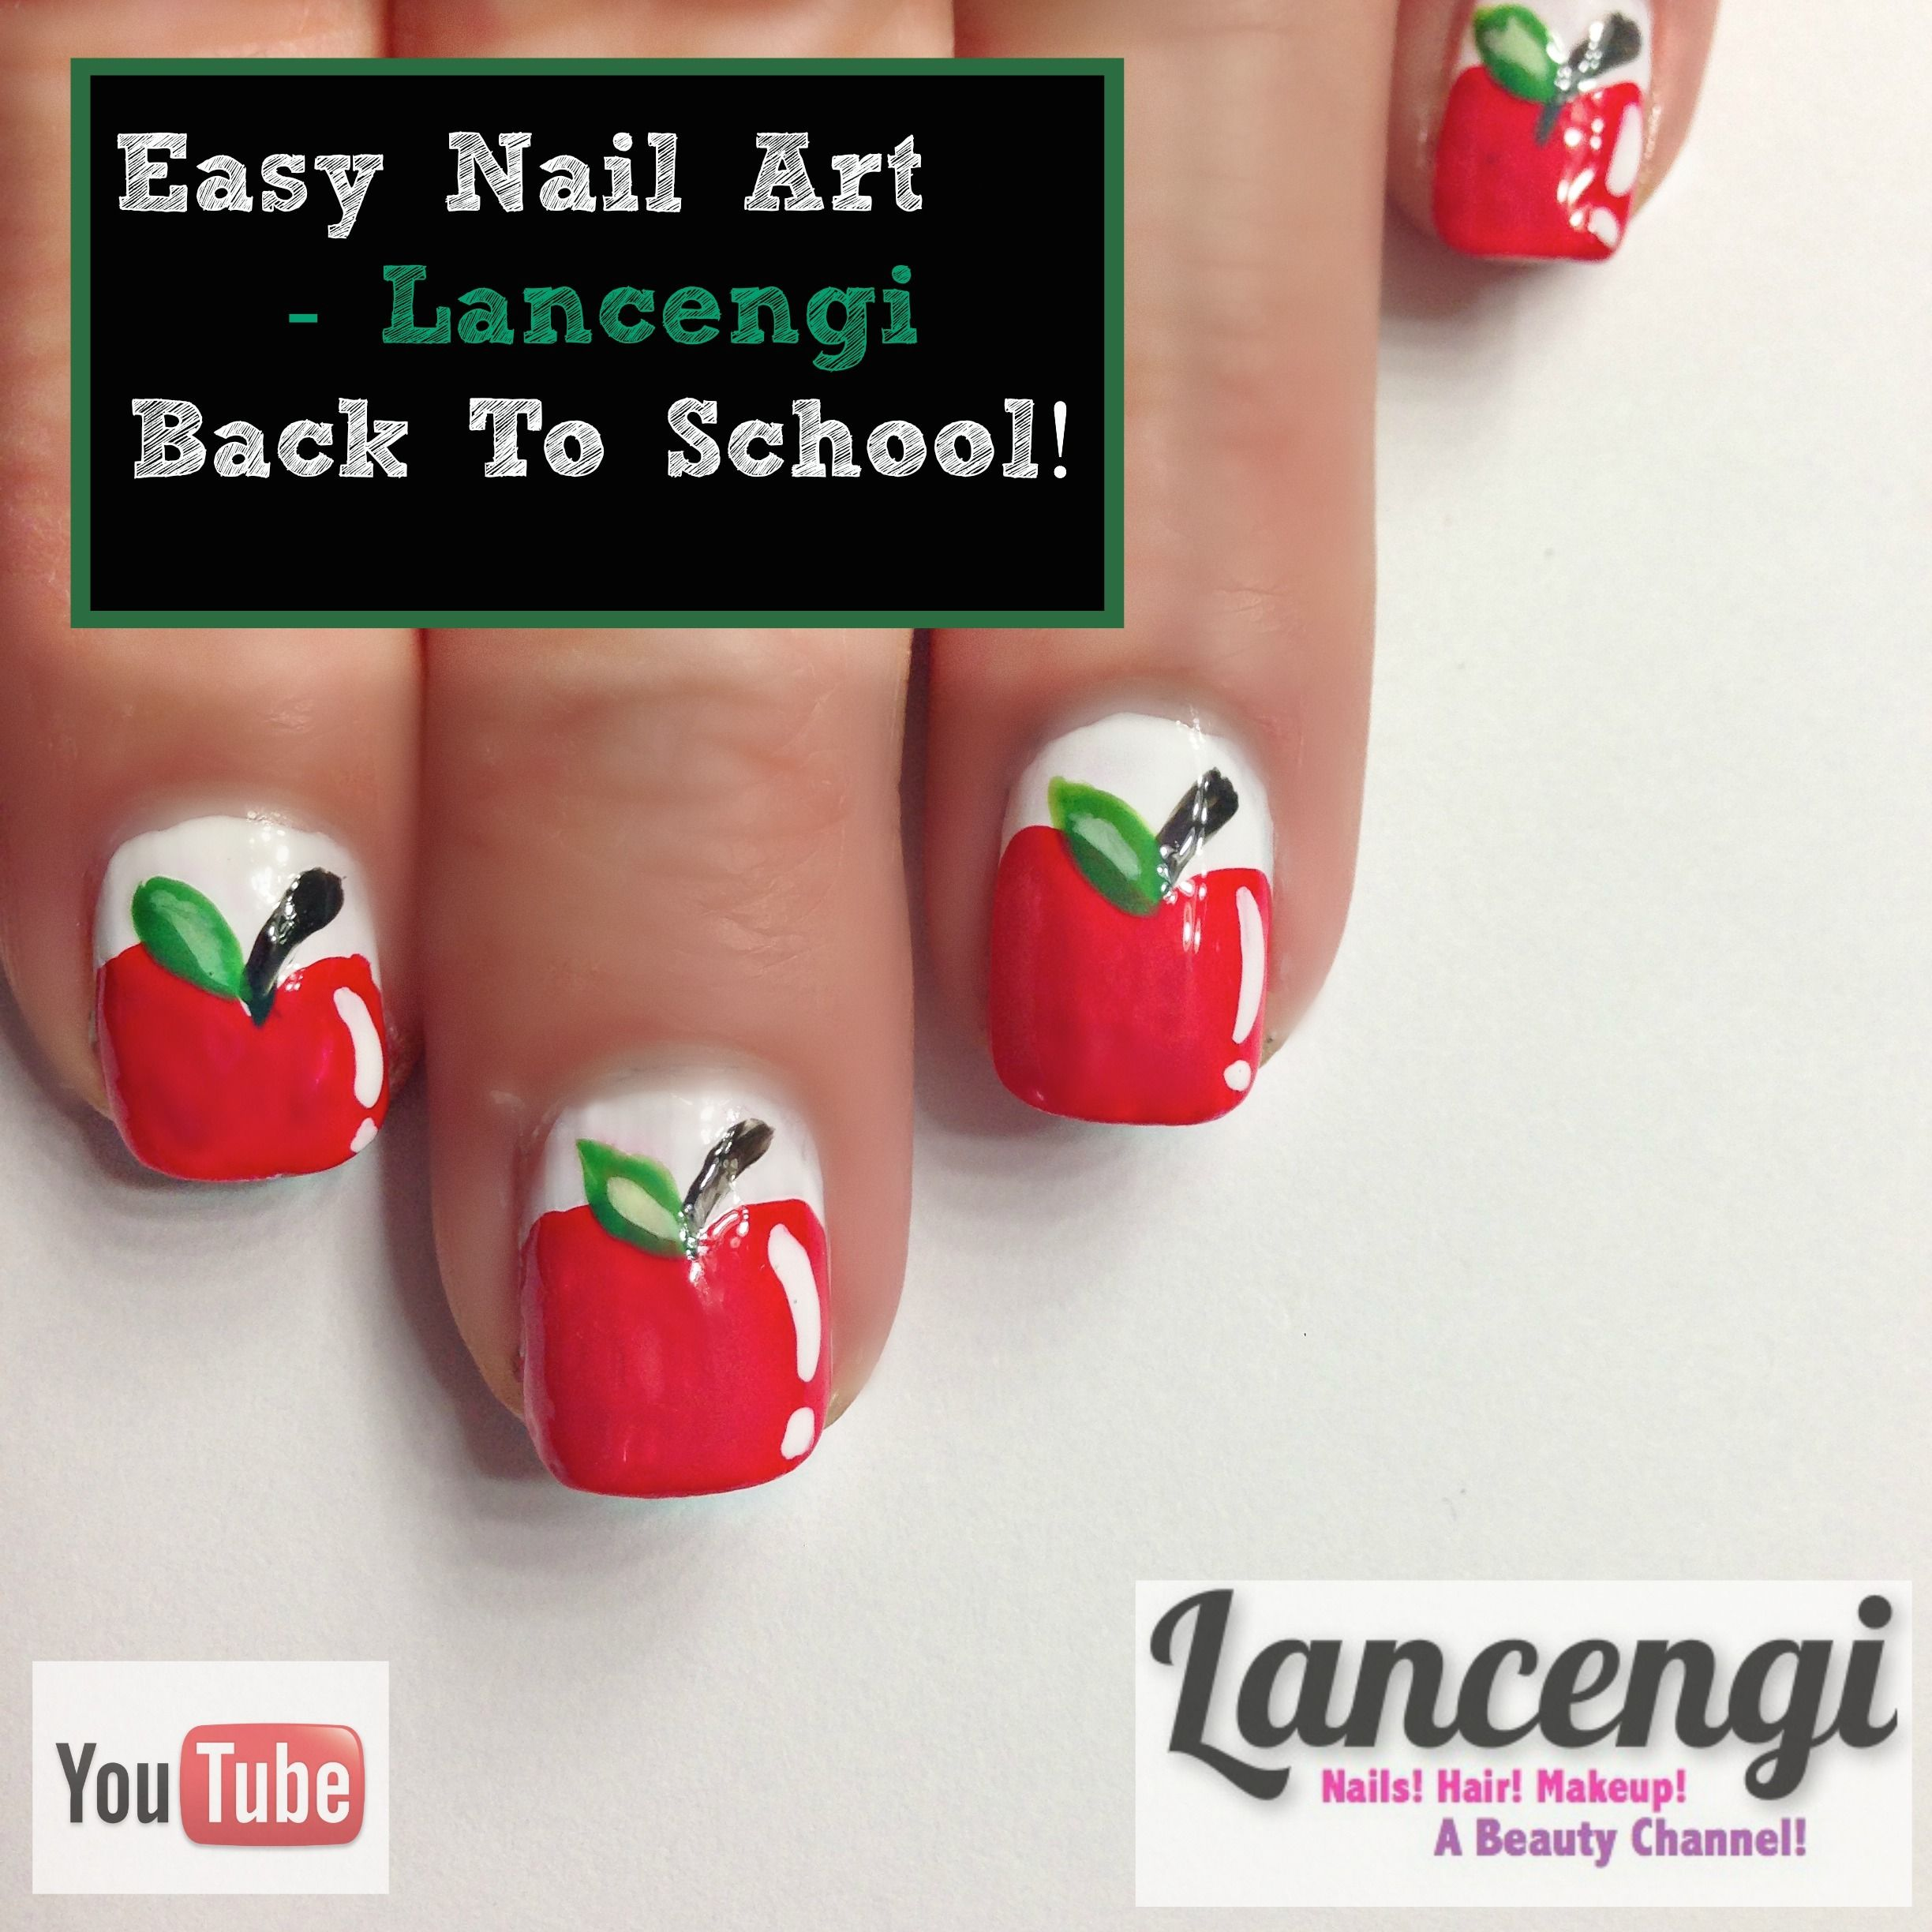 ▷ Easy Nail Art Designs For Beginners #6 - Back to School DIY ...